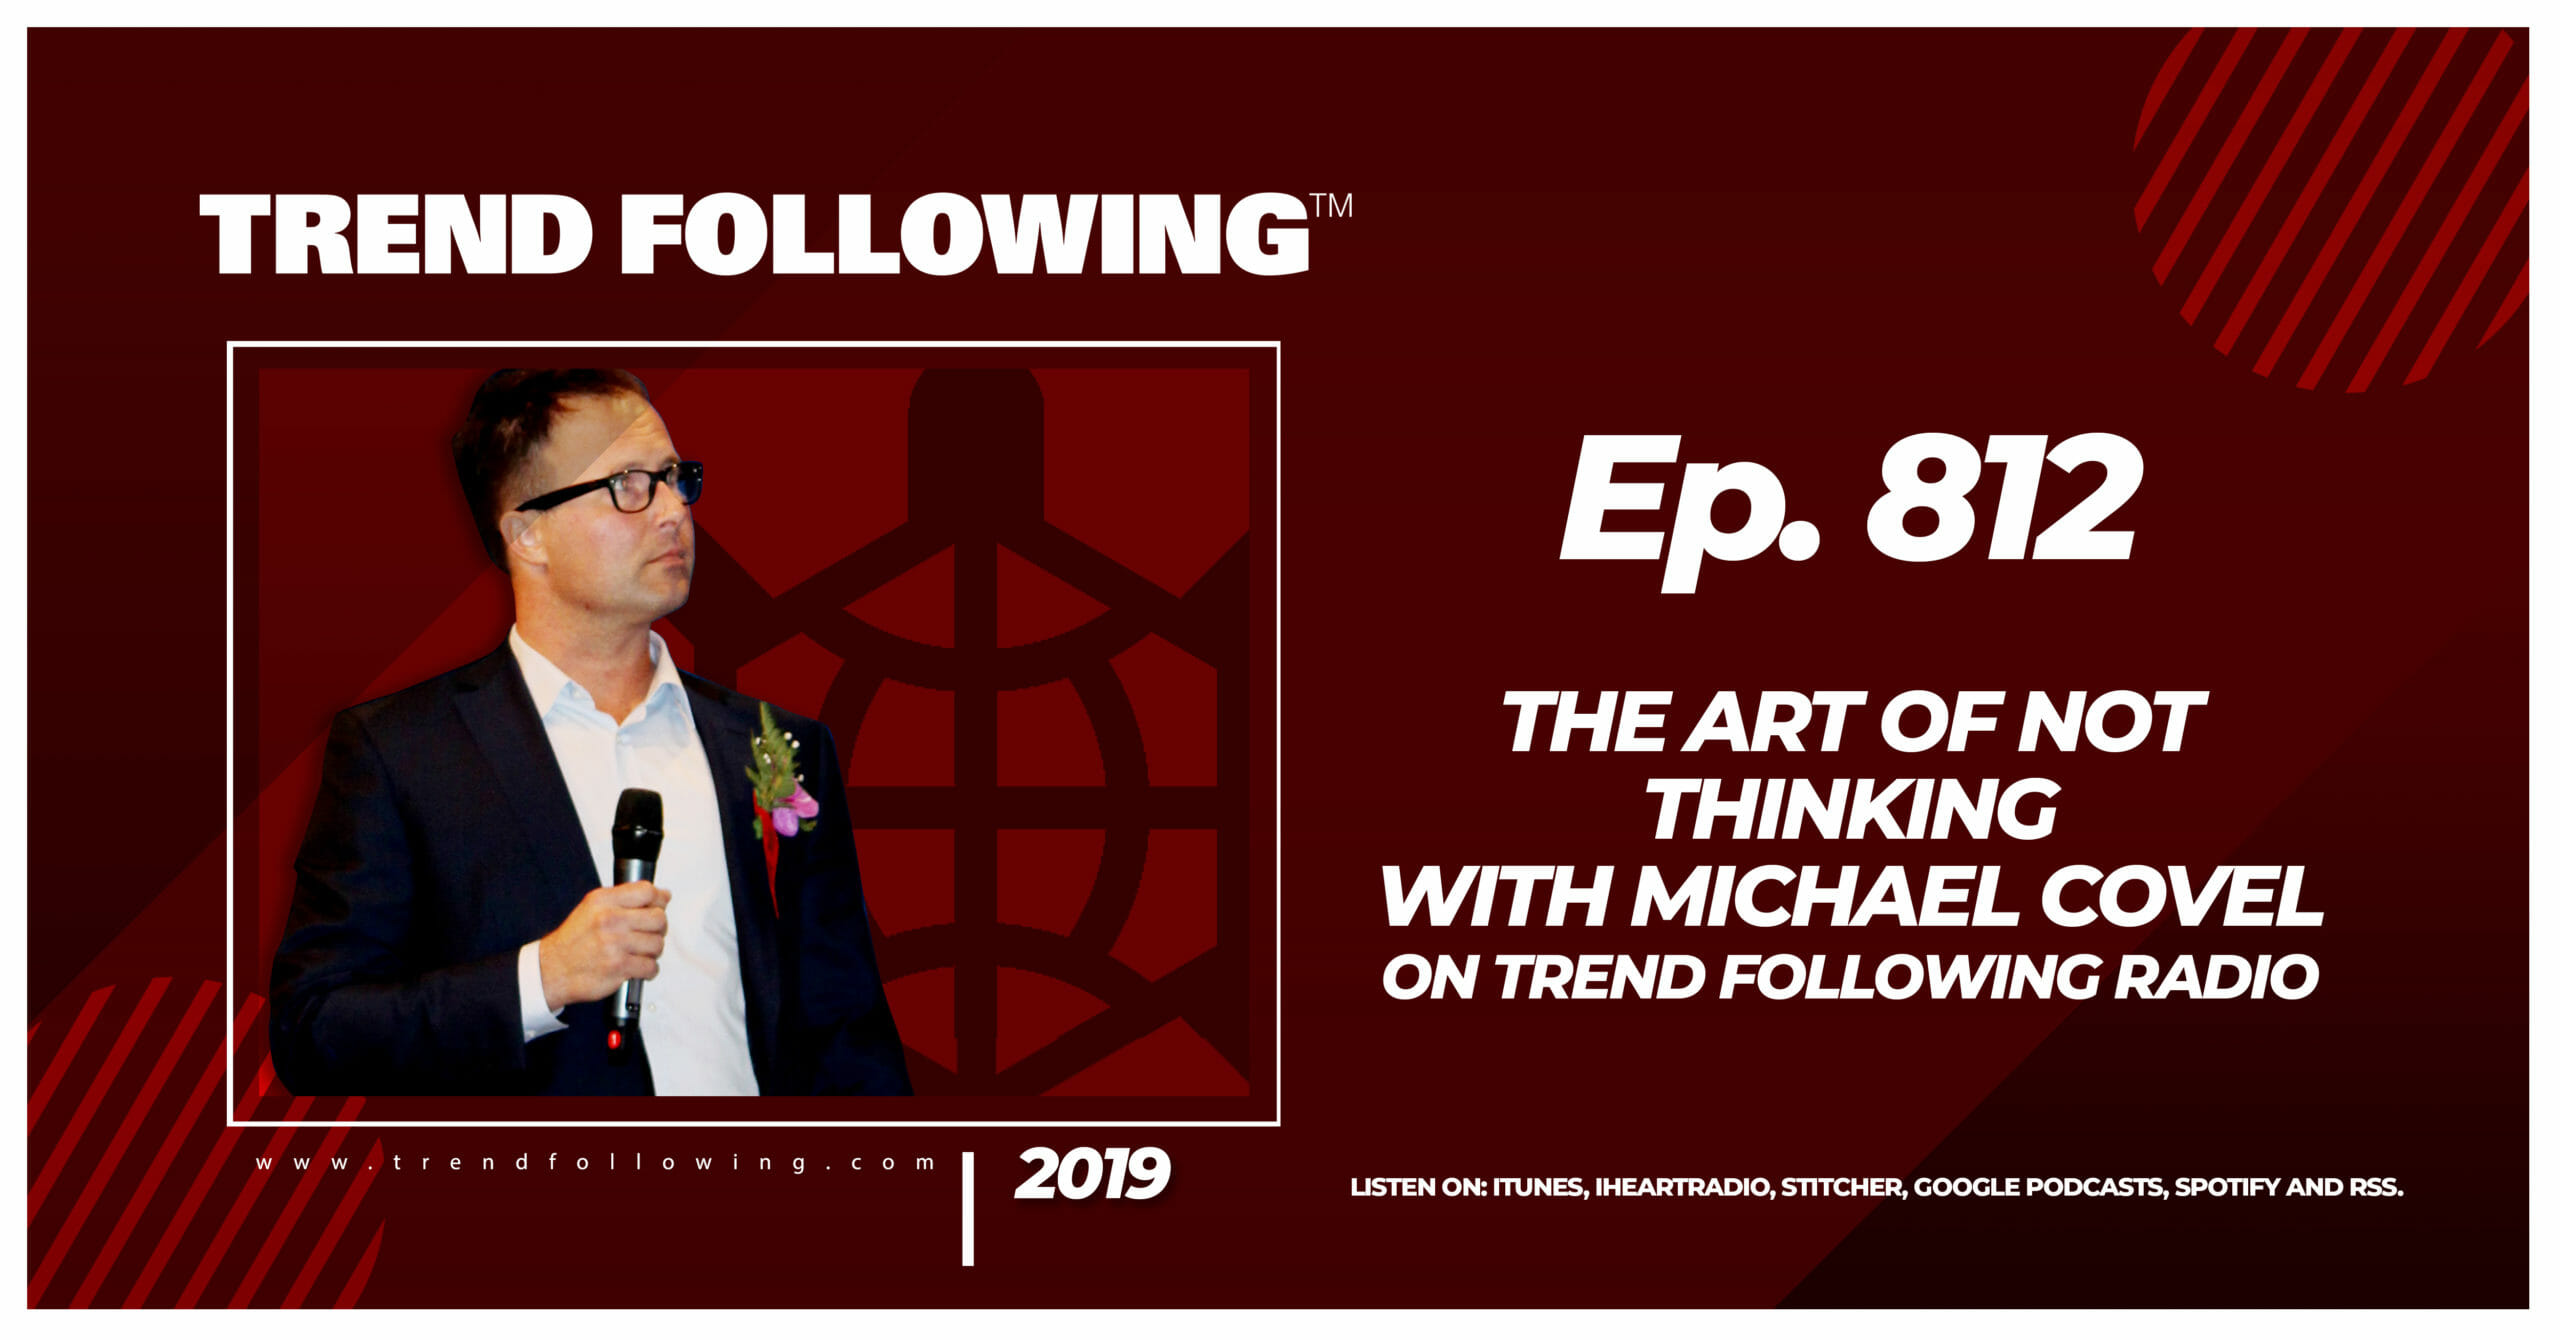 The Art of Not Thinking with Michael Covel